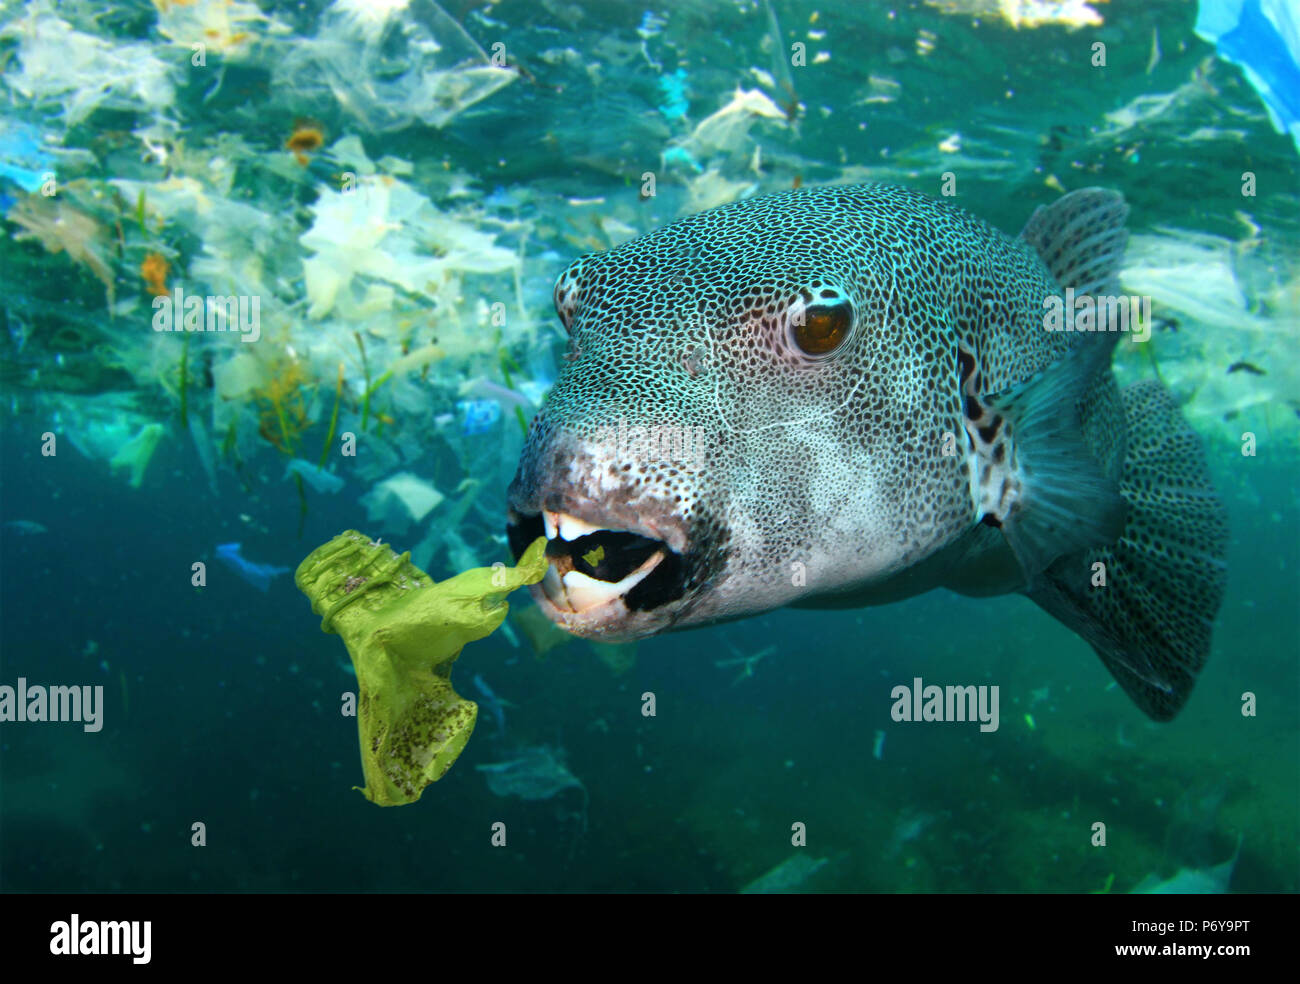 Stellate puffer, Arothron stellatus, eating a plastic bottle. - Stock Image